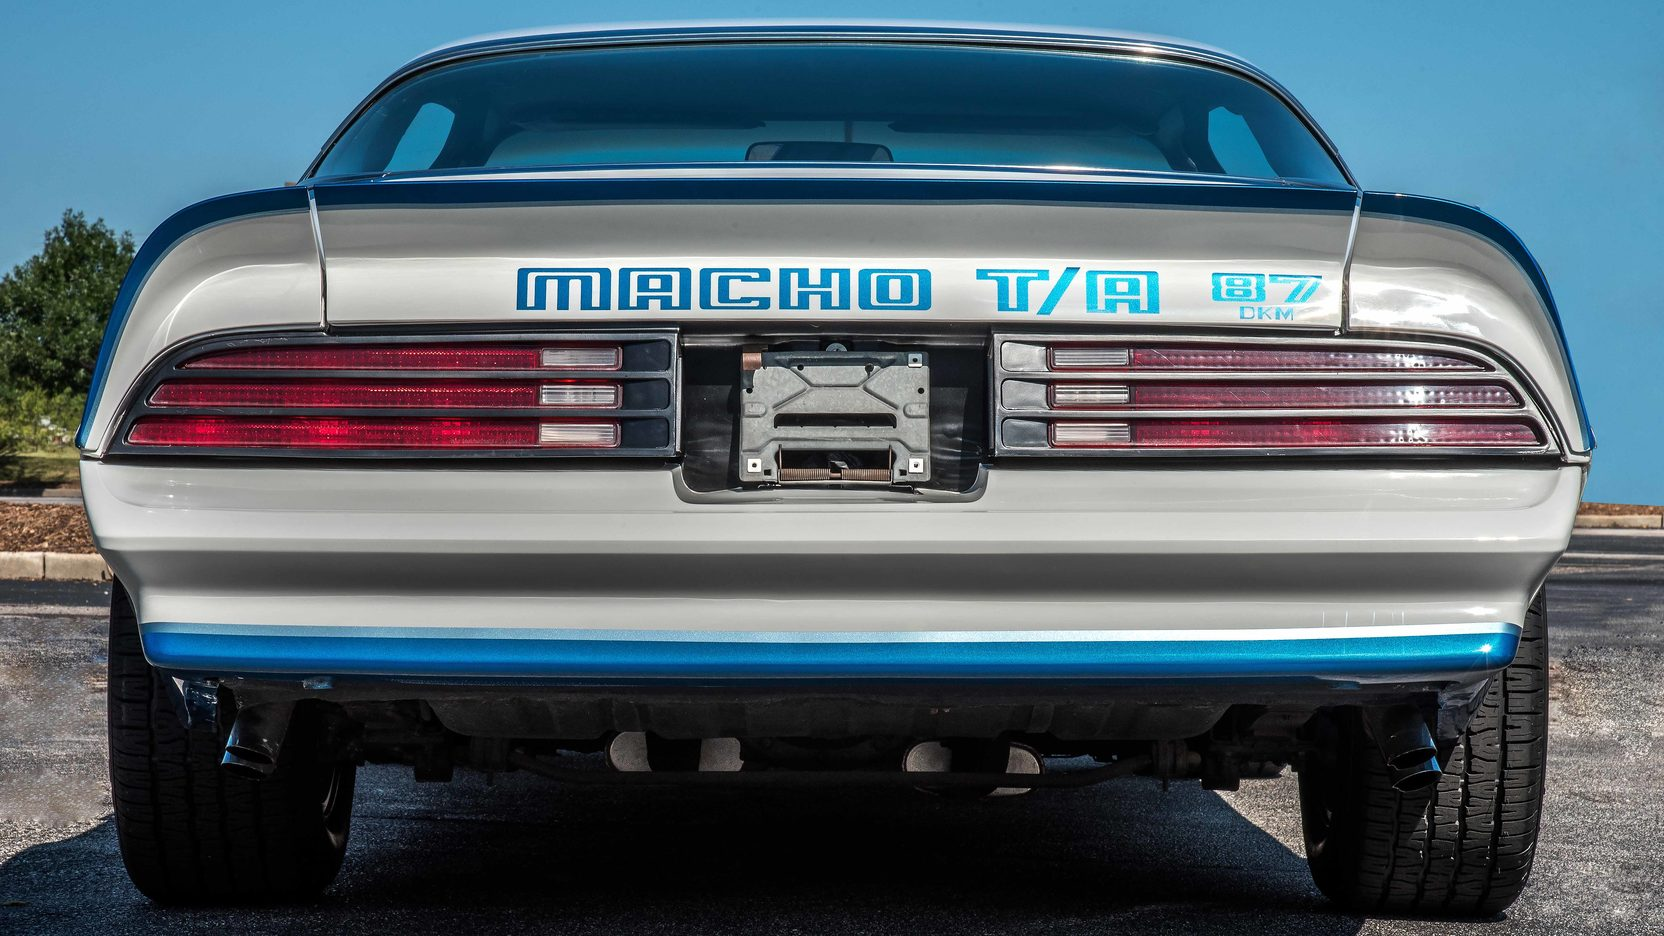 1978 Pontiac Macho Trans Am rear